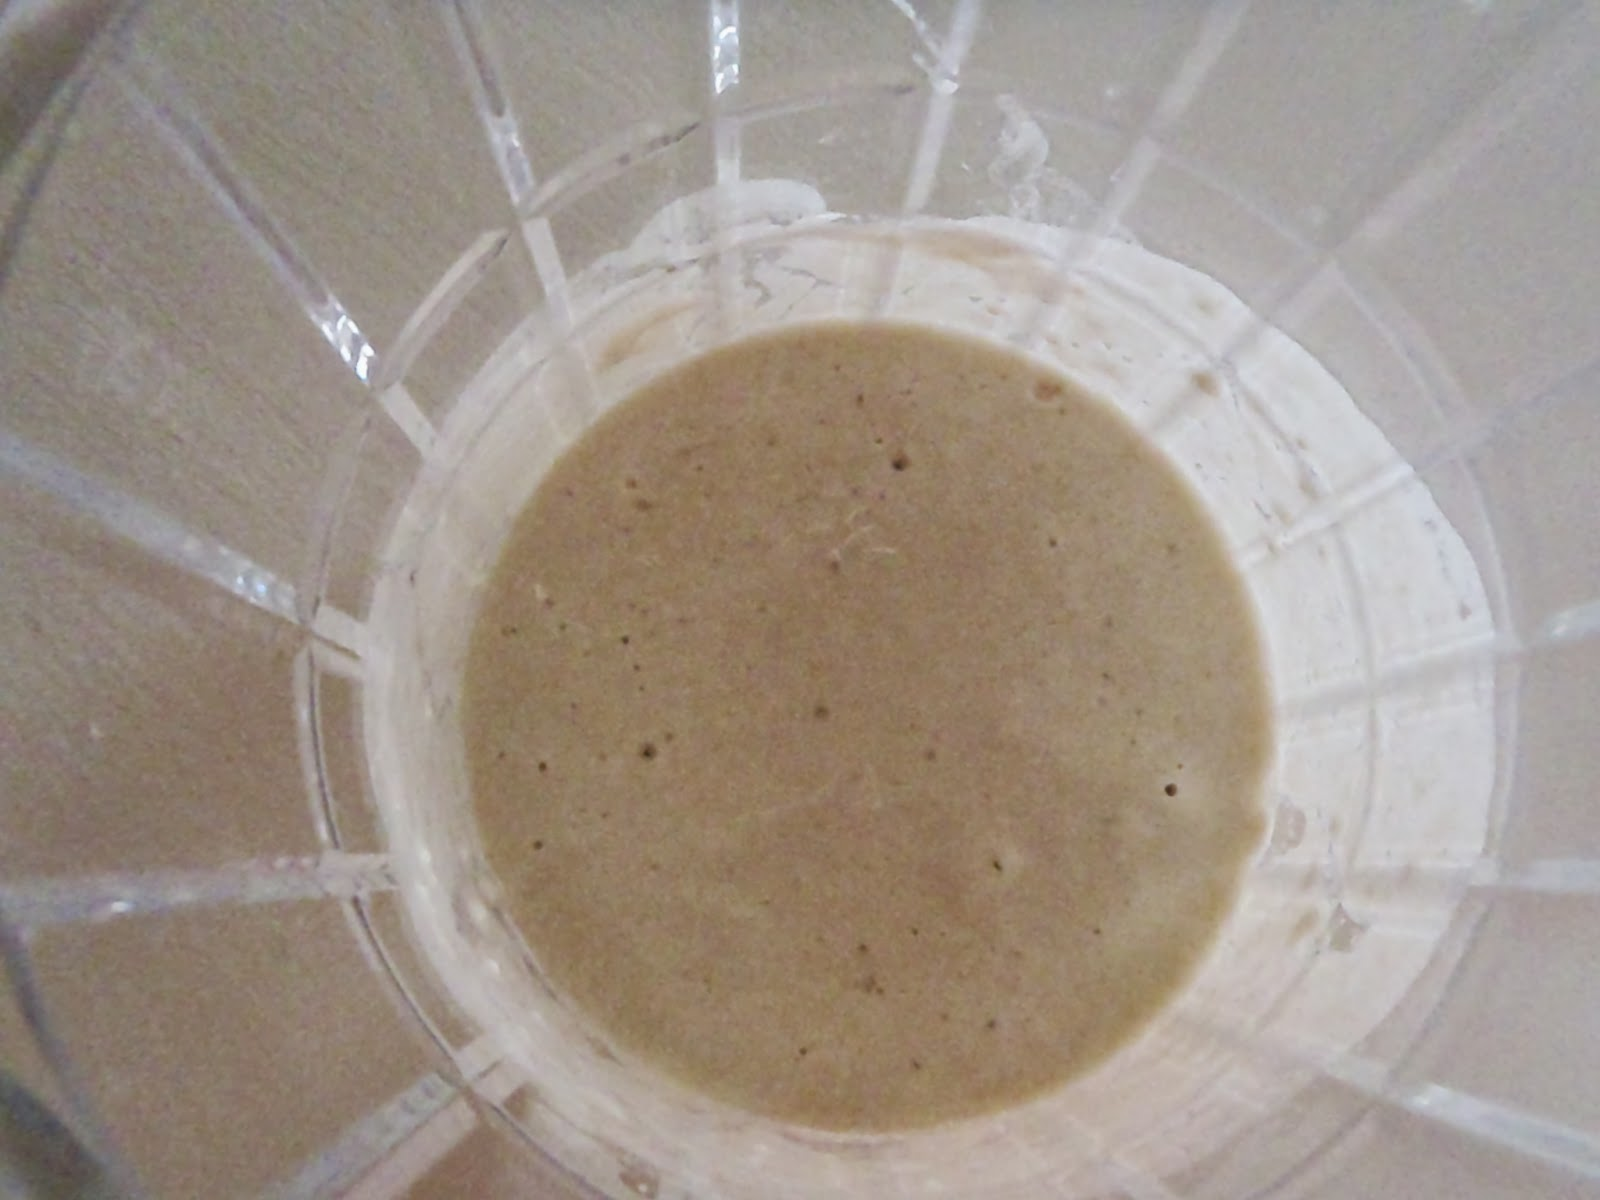 How to Get/Make Sourdough Starter